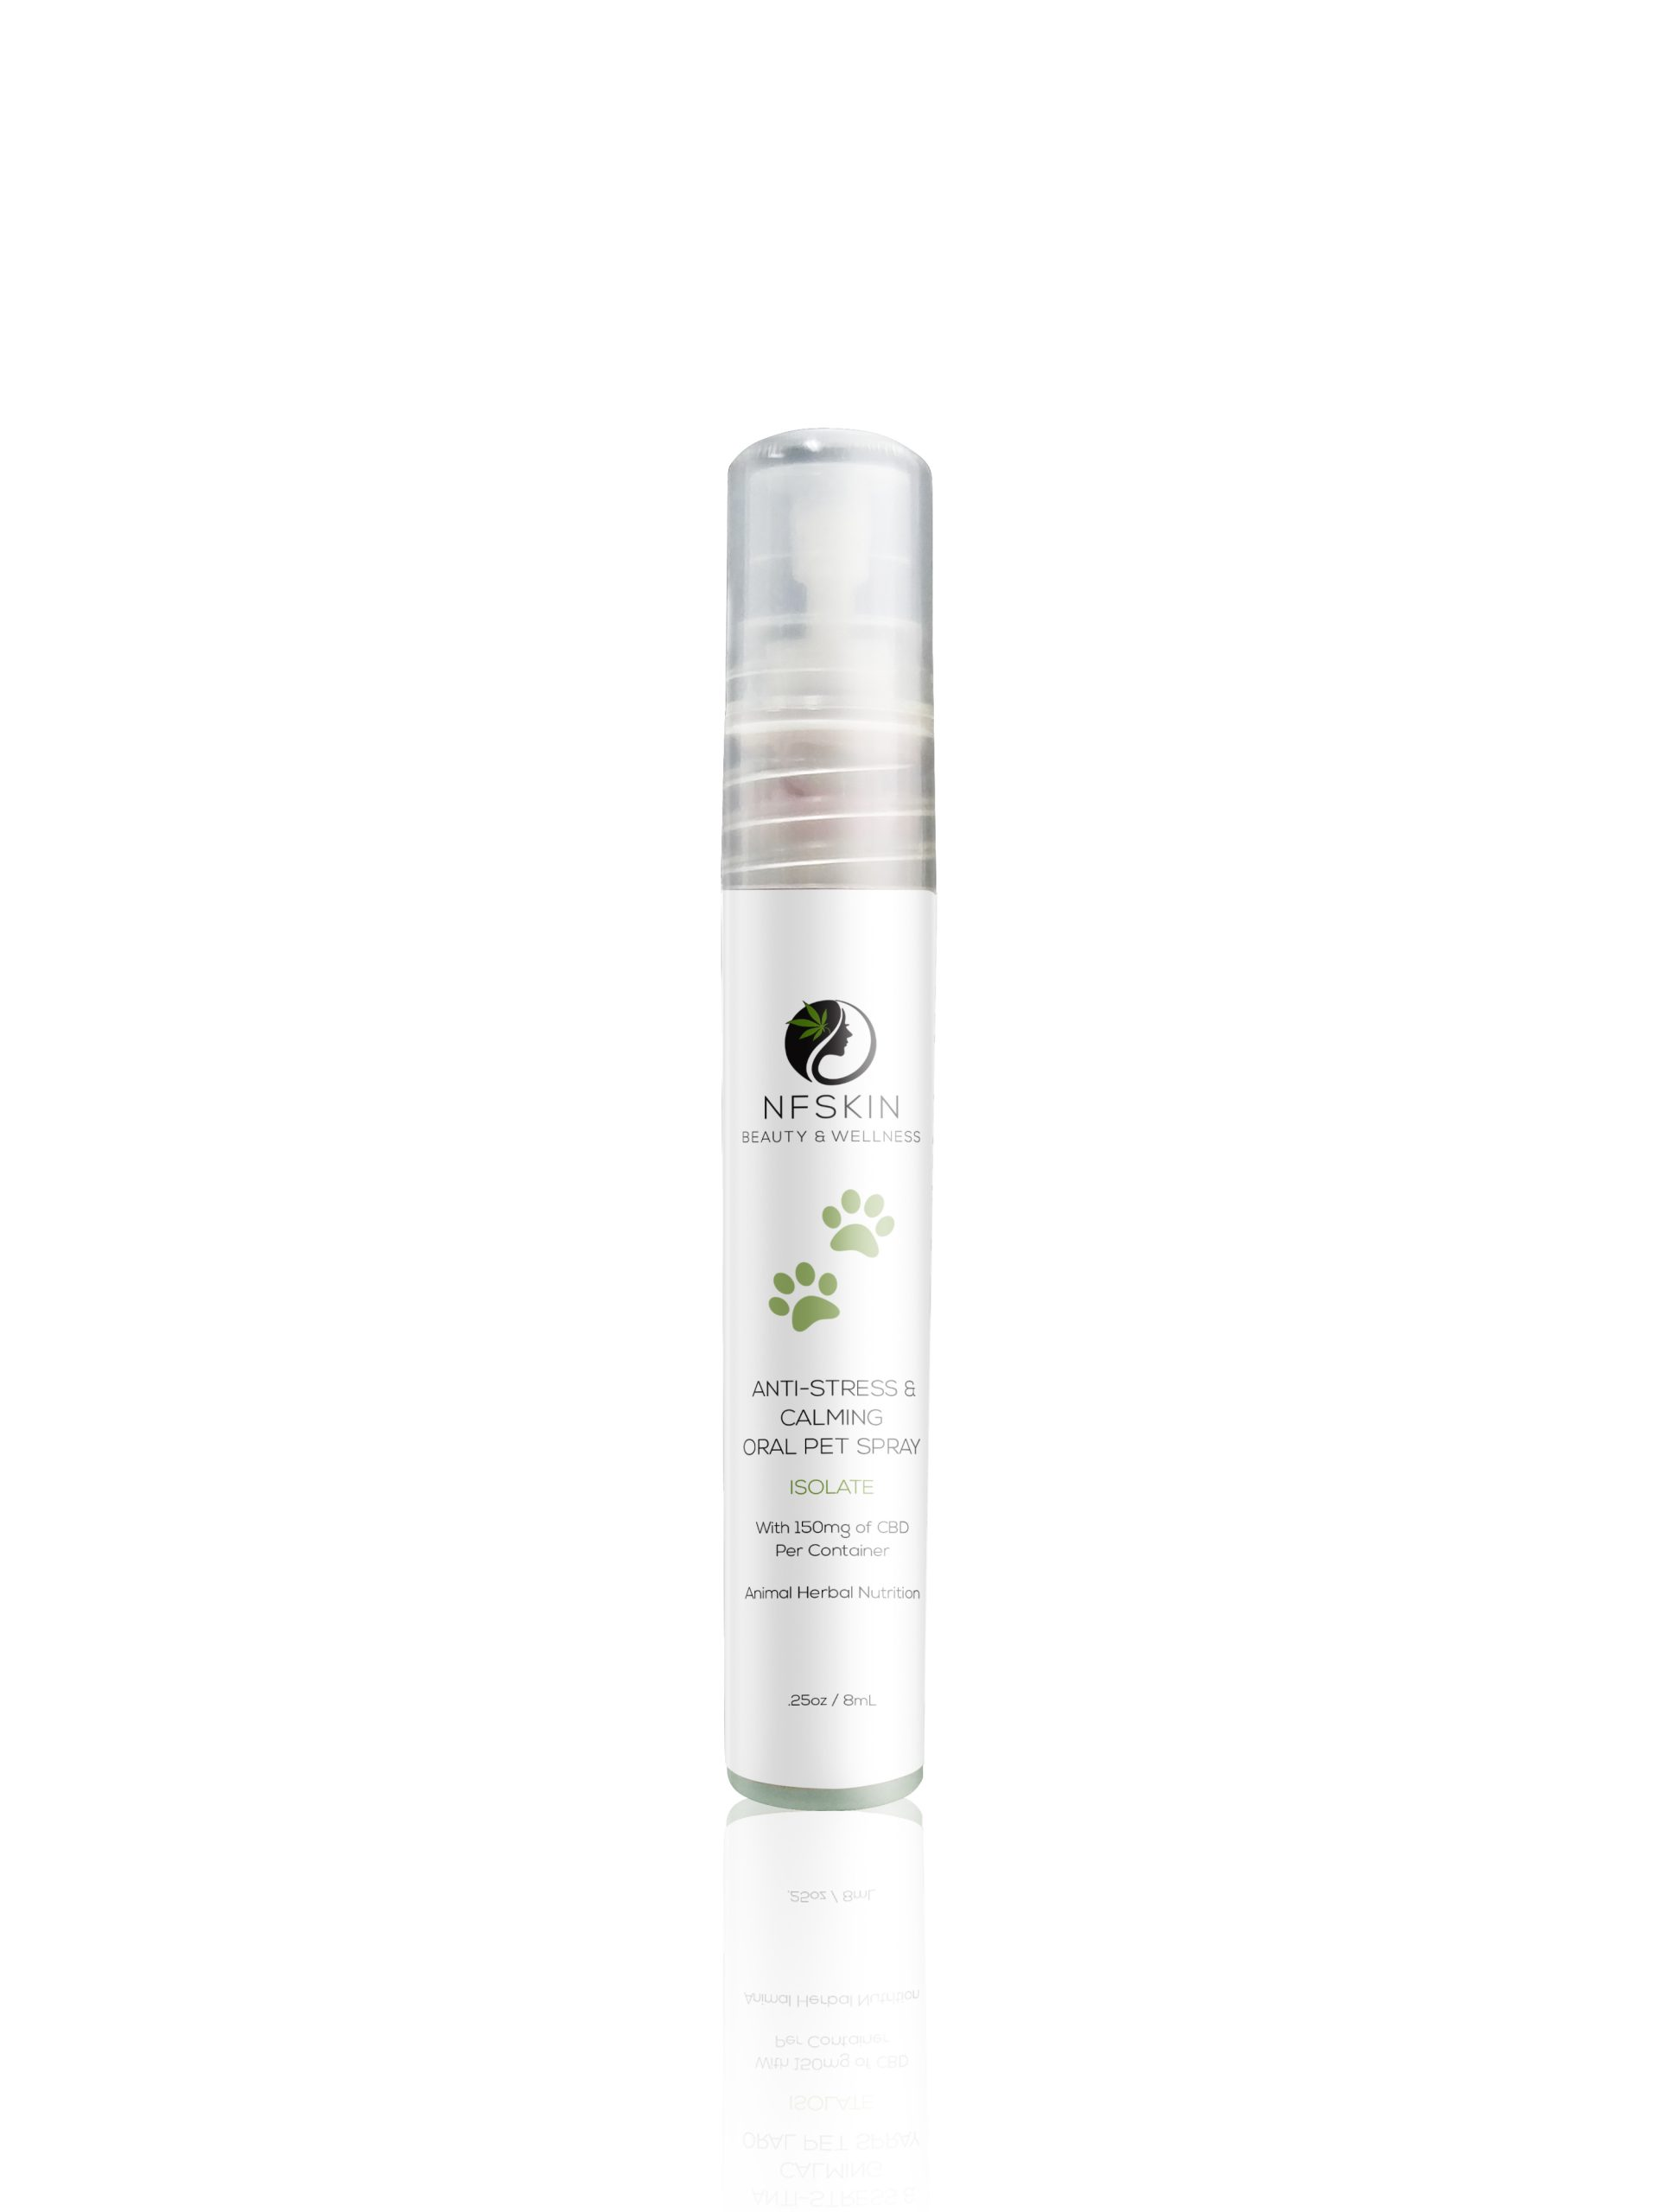 Anti-Stress & Relaxation Oral Pet Spray